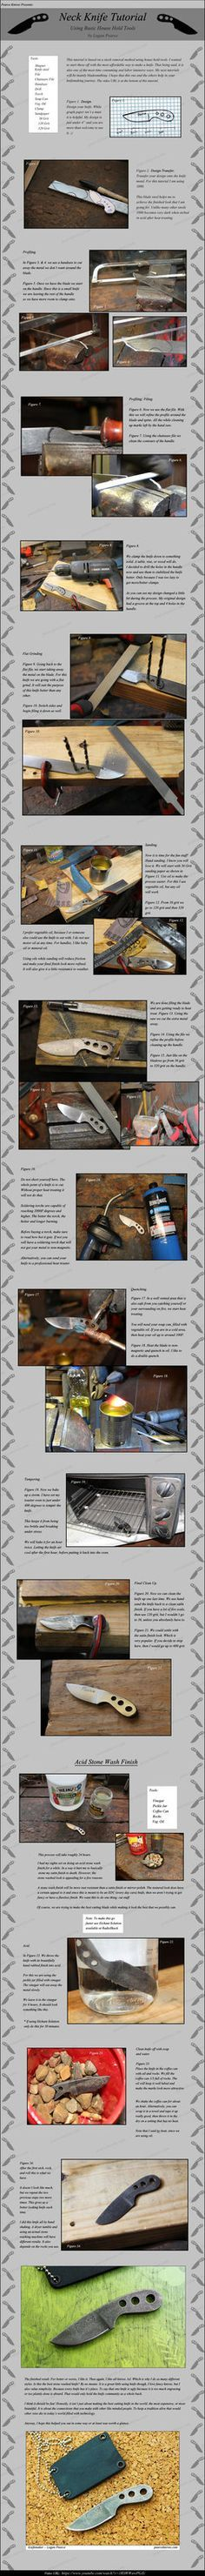 Neck Knife Tutorial by Logan Pearce Knives. by Logan-Pearce on DeviantArt